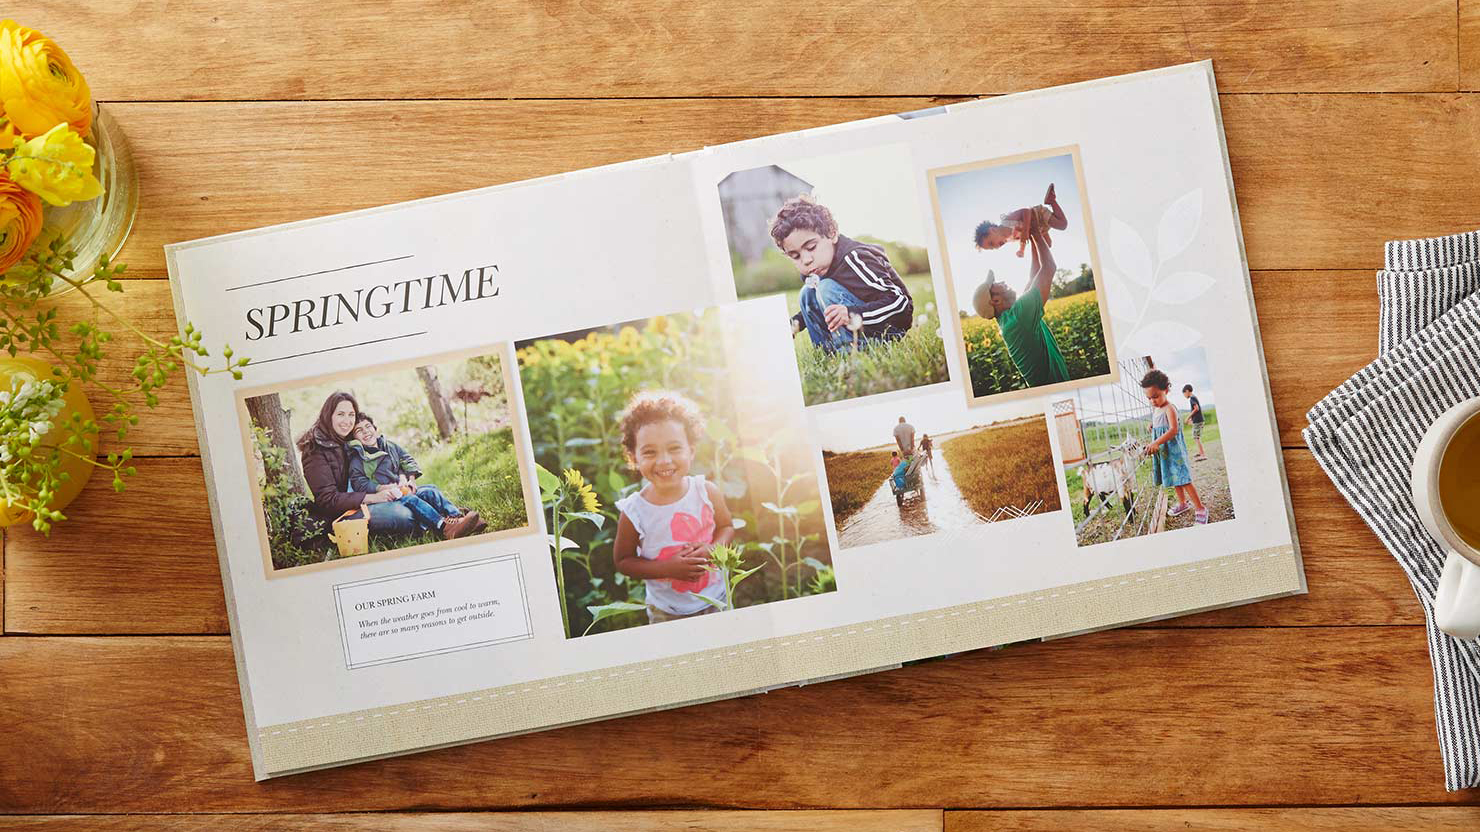 A photobook from Shutterfly